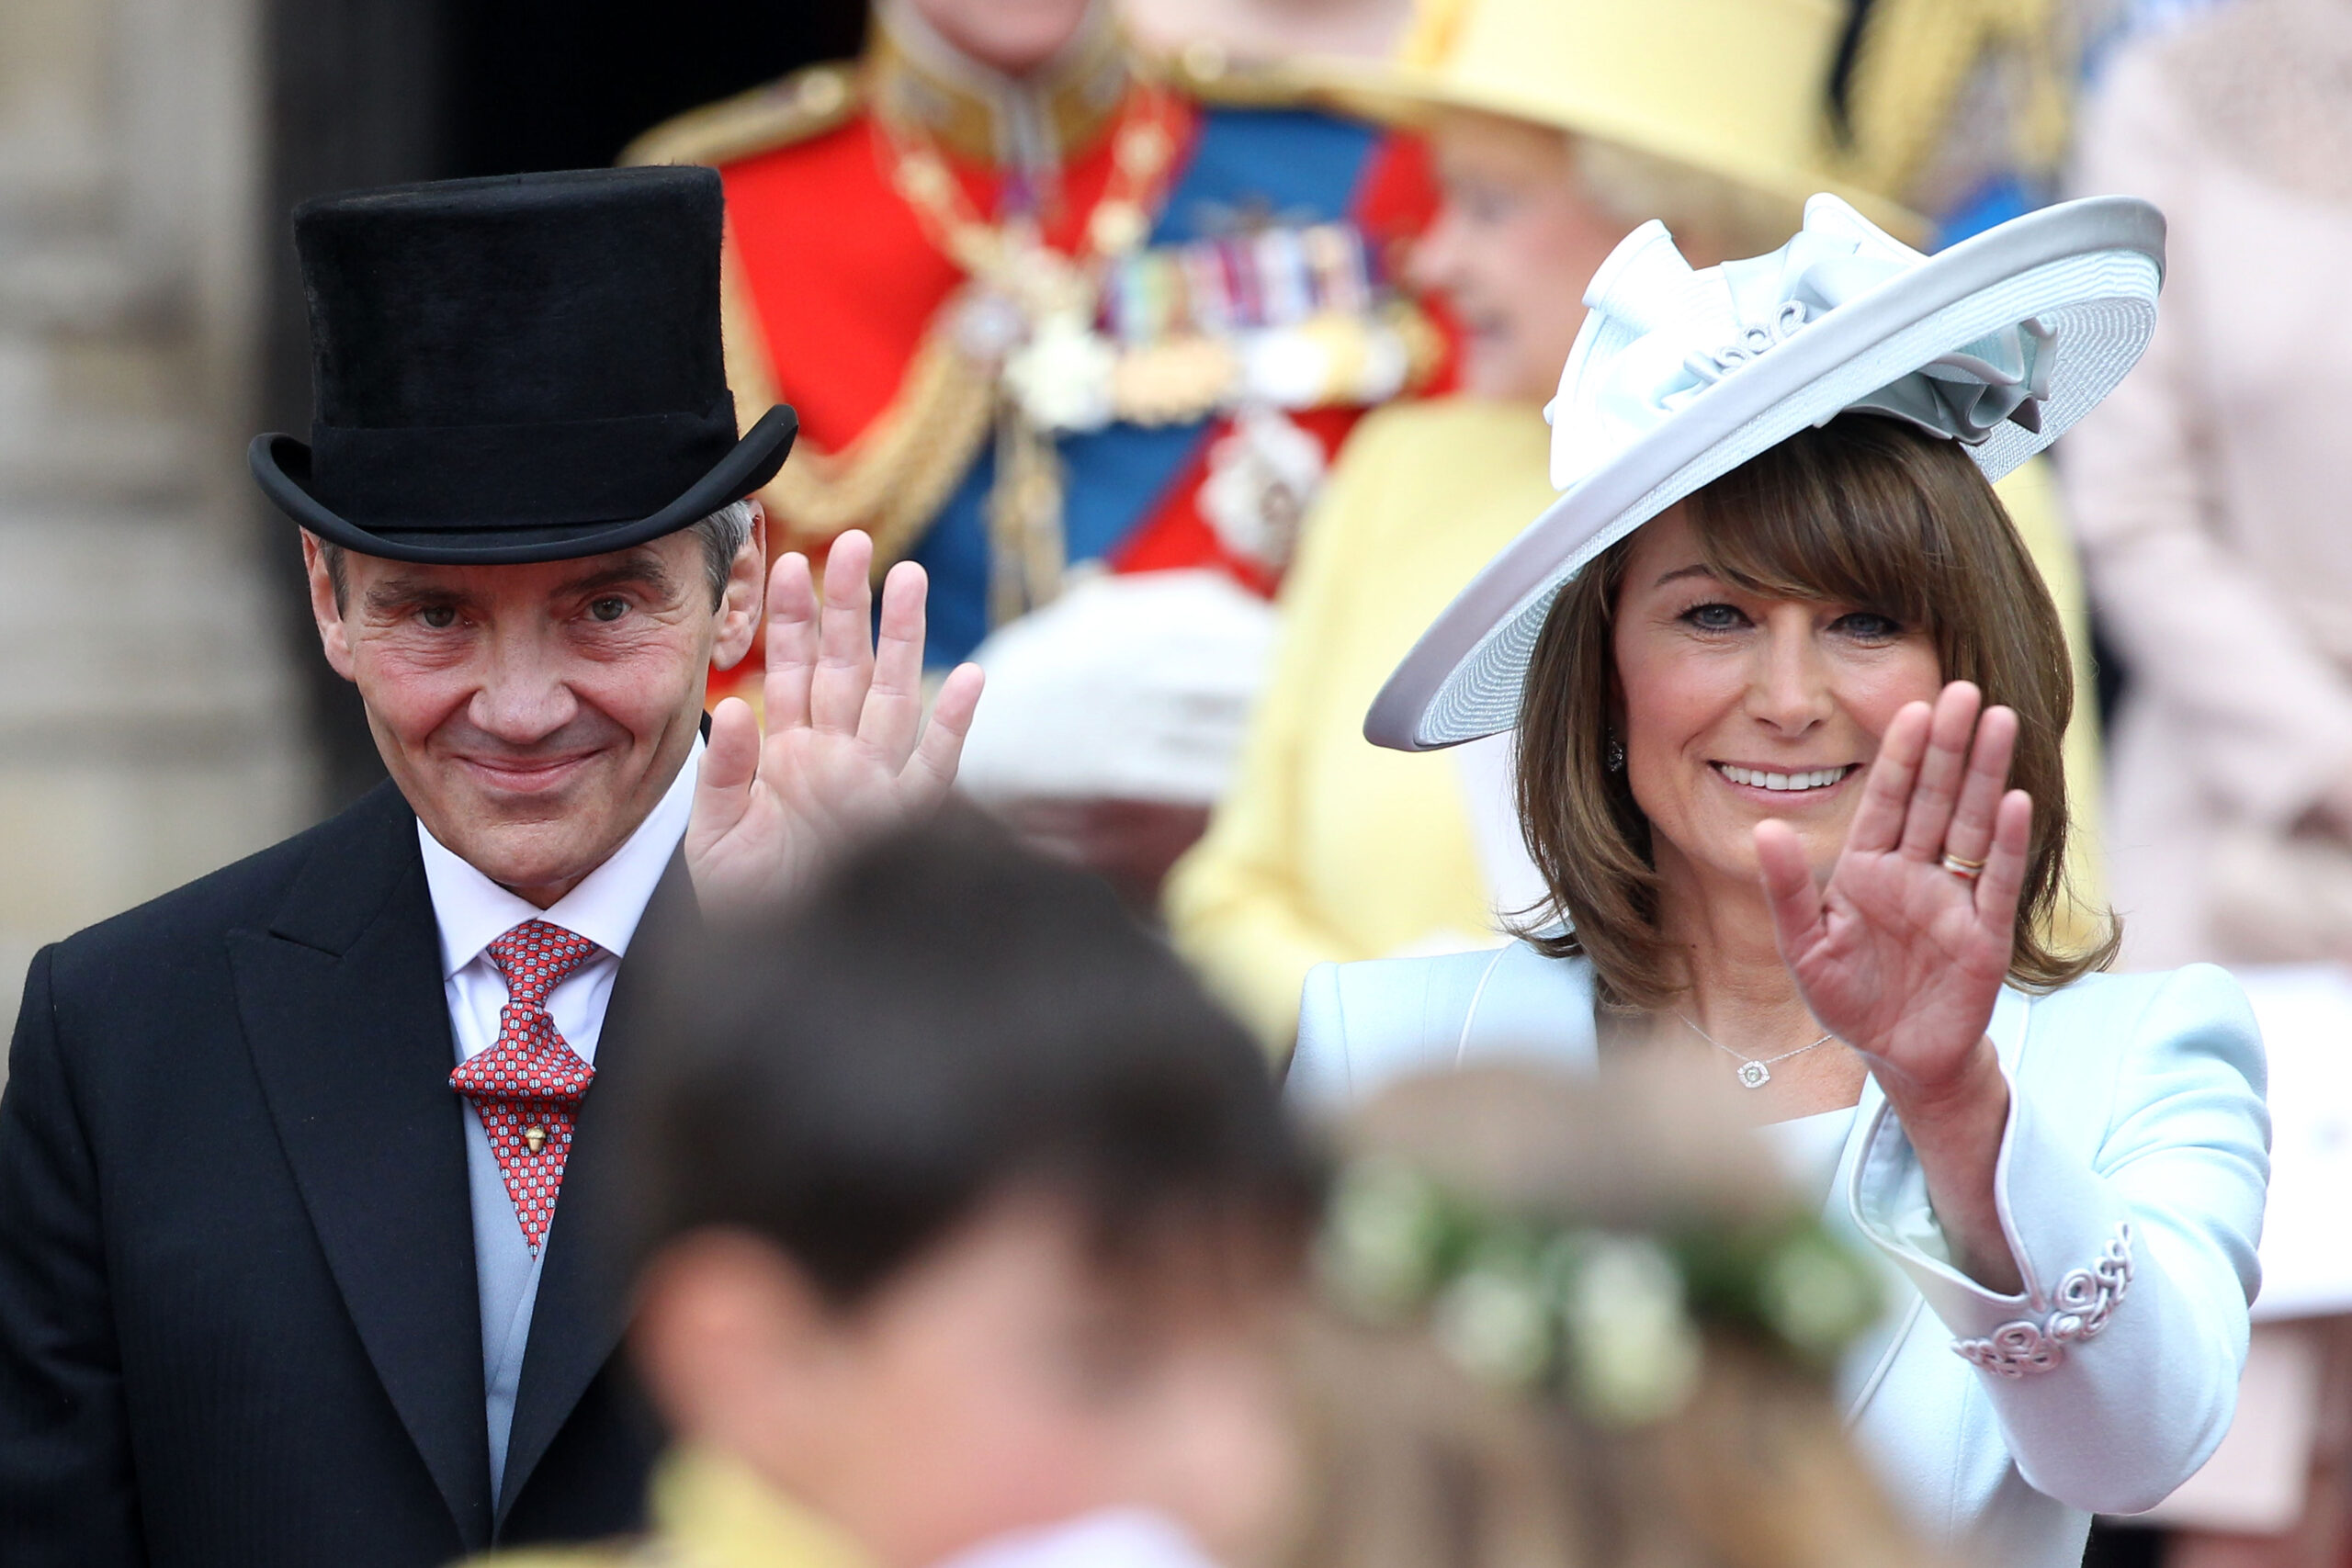 Michael and Carole Middleton smile and wave at the crowds following the marriage of Prince William, Duke of Cambridge and Catherine, Duchess of Cambridge at Westminster Abbey on April 29, 2011 in London, England.